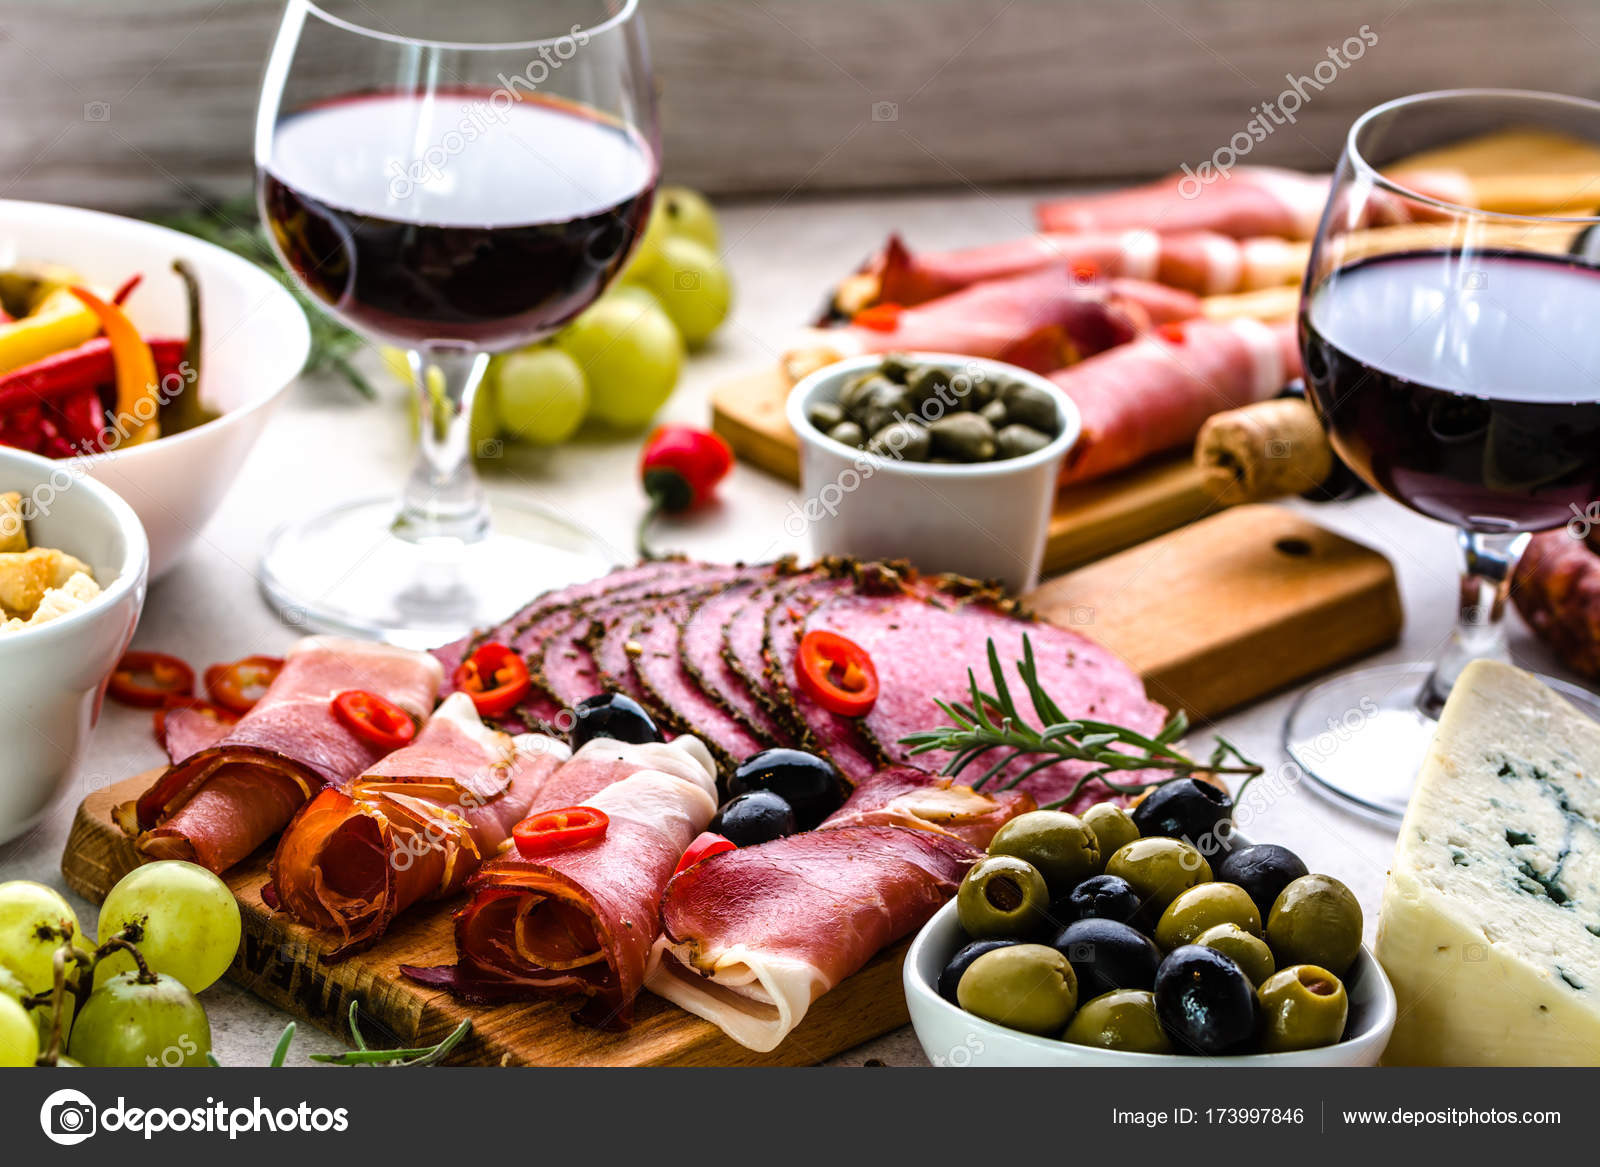 Selection Of Food Wine Snack Set On Table Italian Antipasti Prosciutto Salami Olives Cheese And Other Appetizer On Platter Stock Photo Image By C Alicjane 173997846